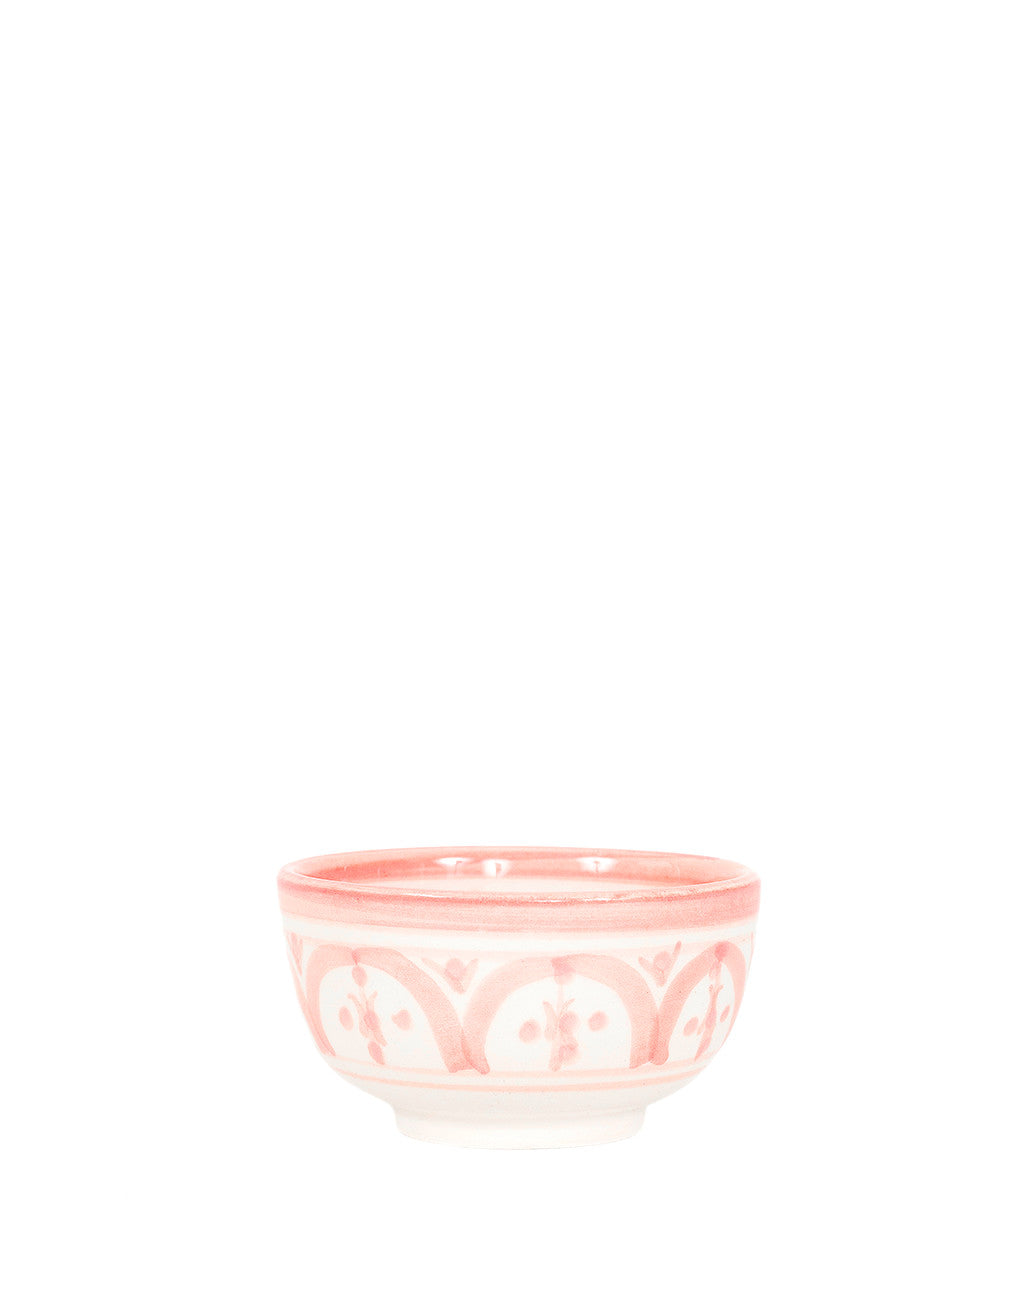 Ceramic Condiment Bowl - Blush | The Little Market